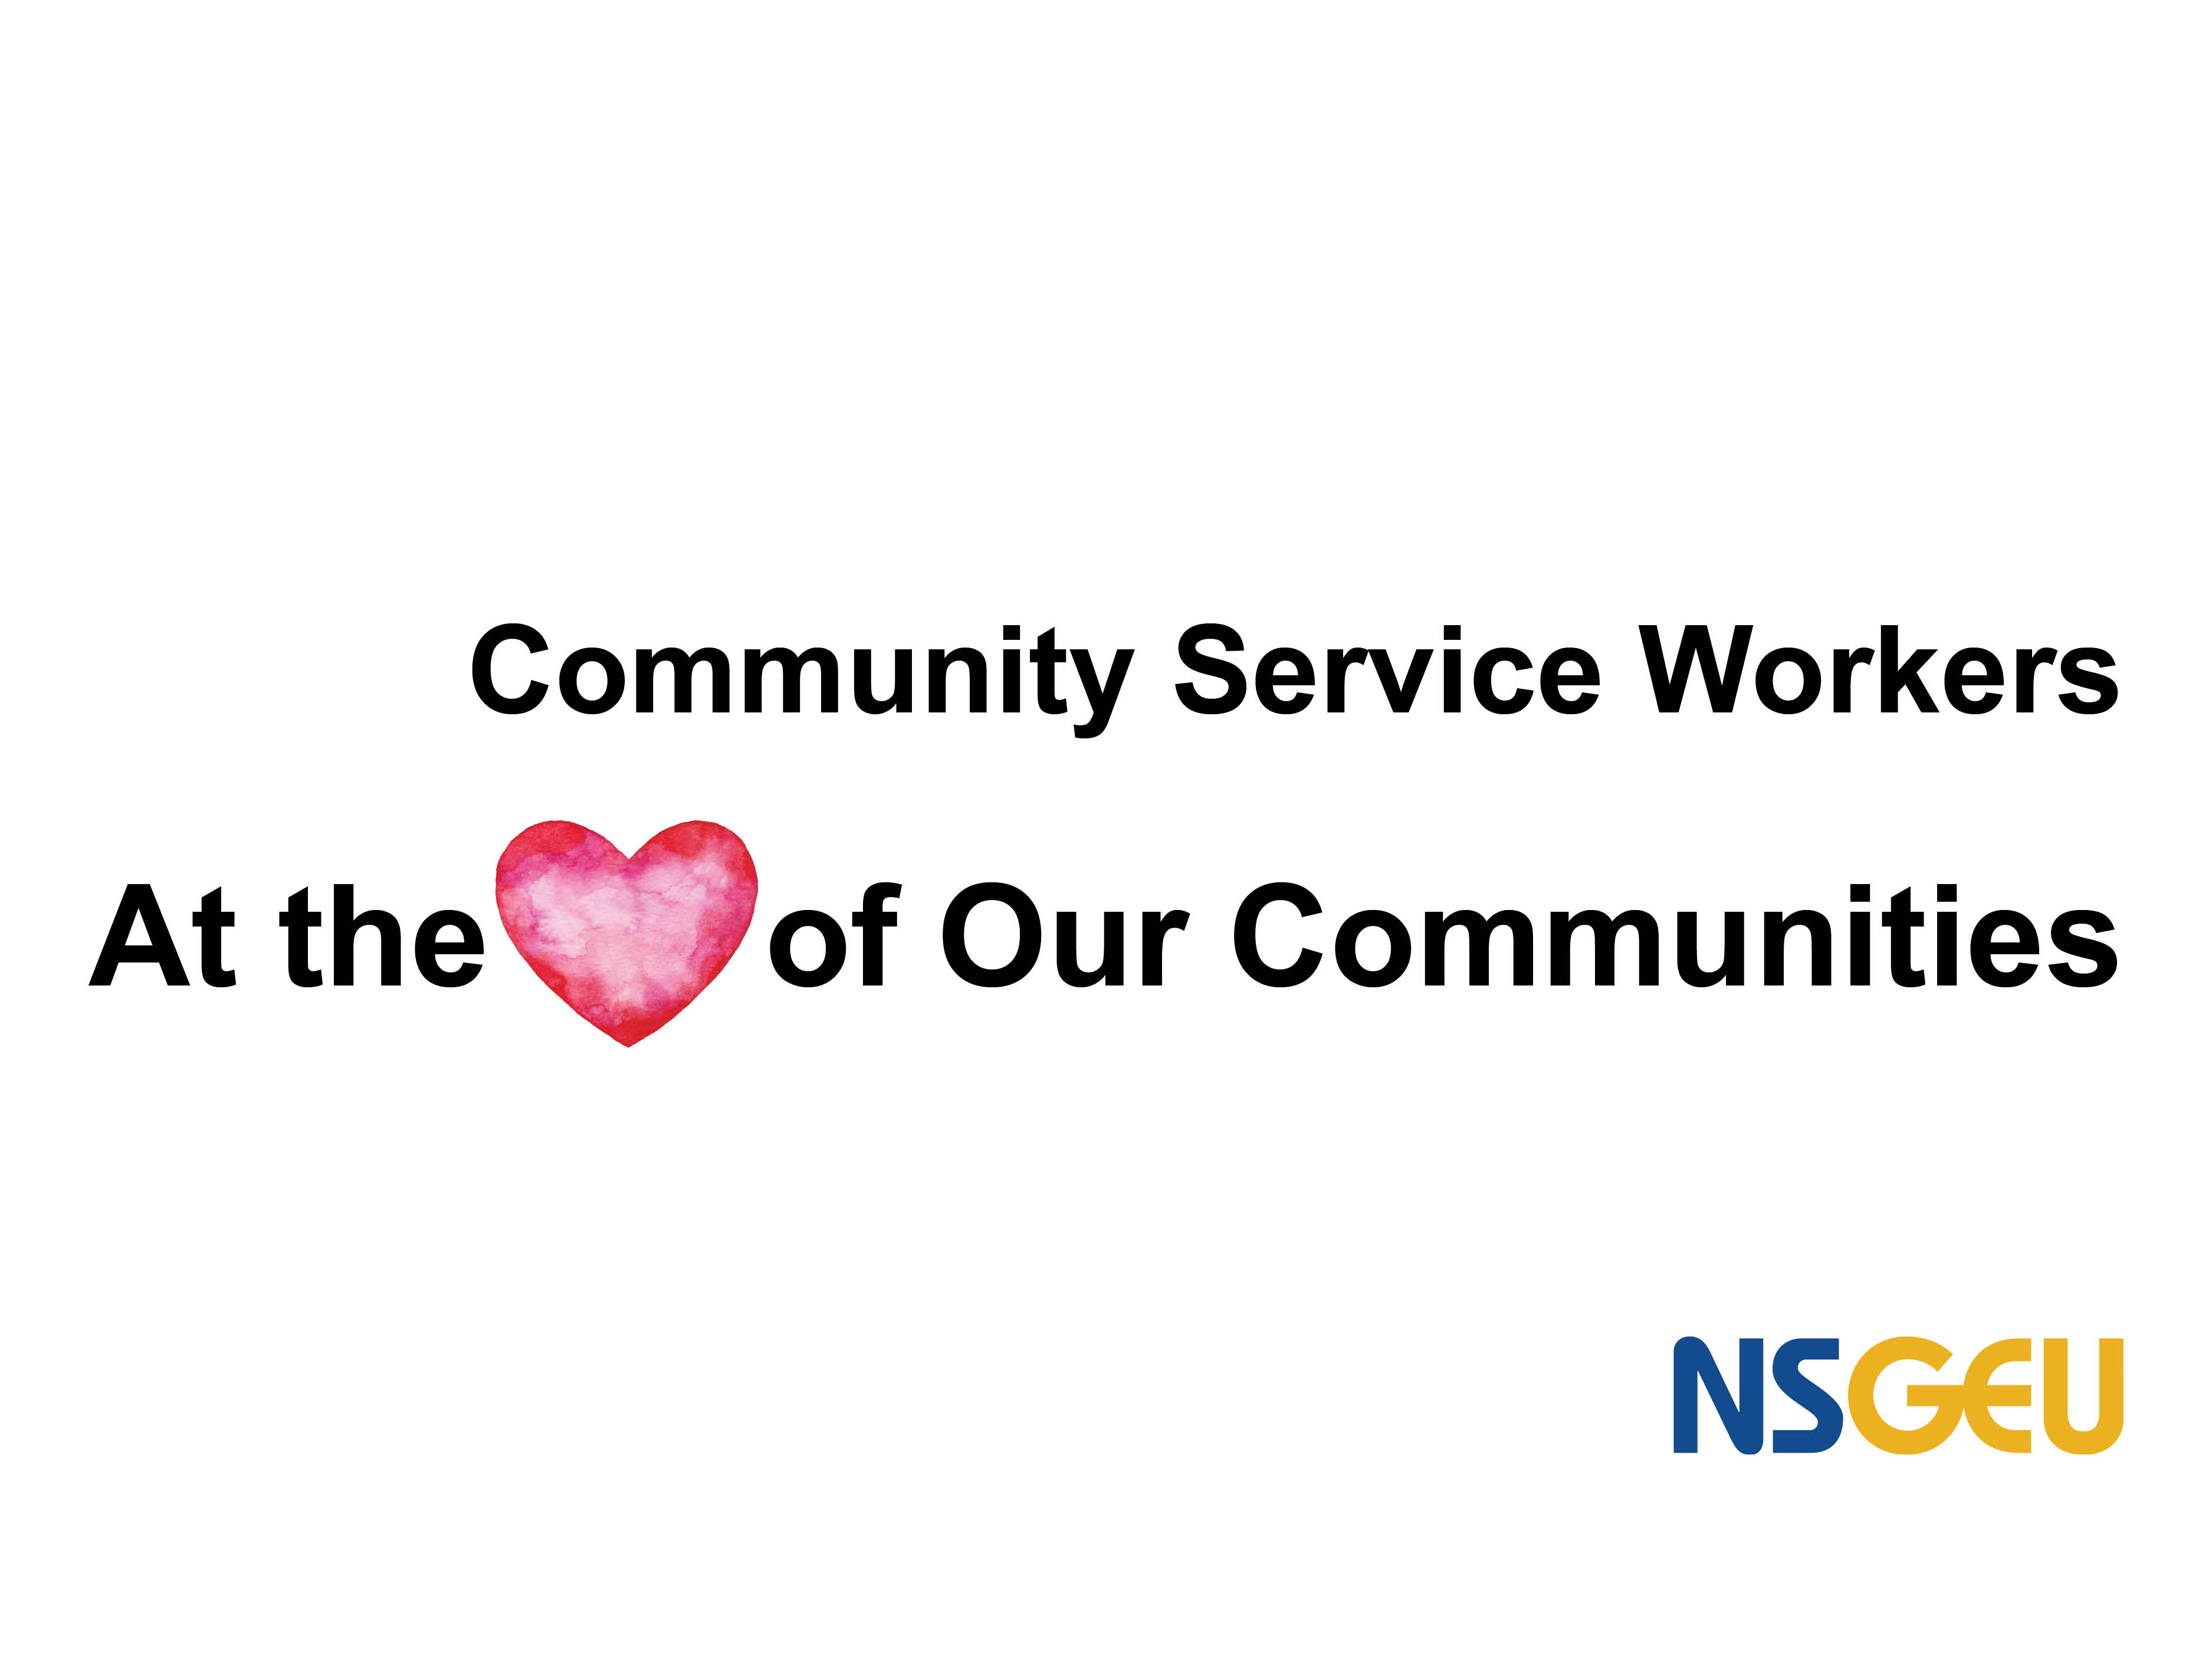 CommunityServiceWorkers